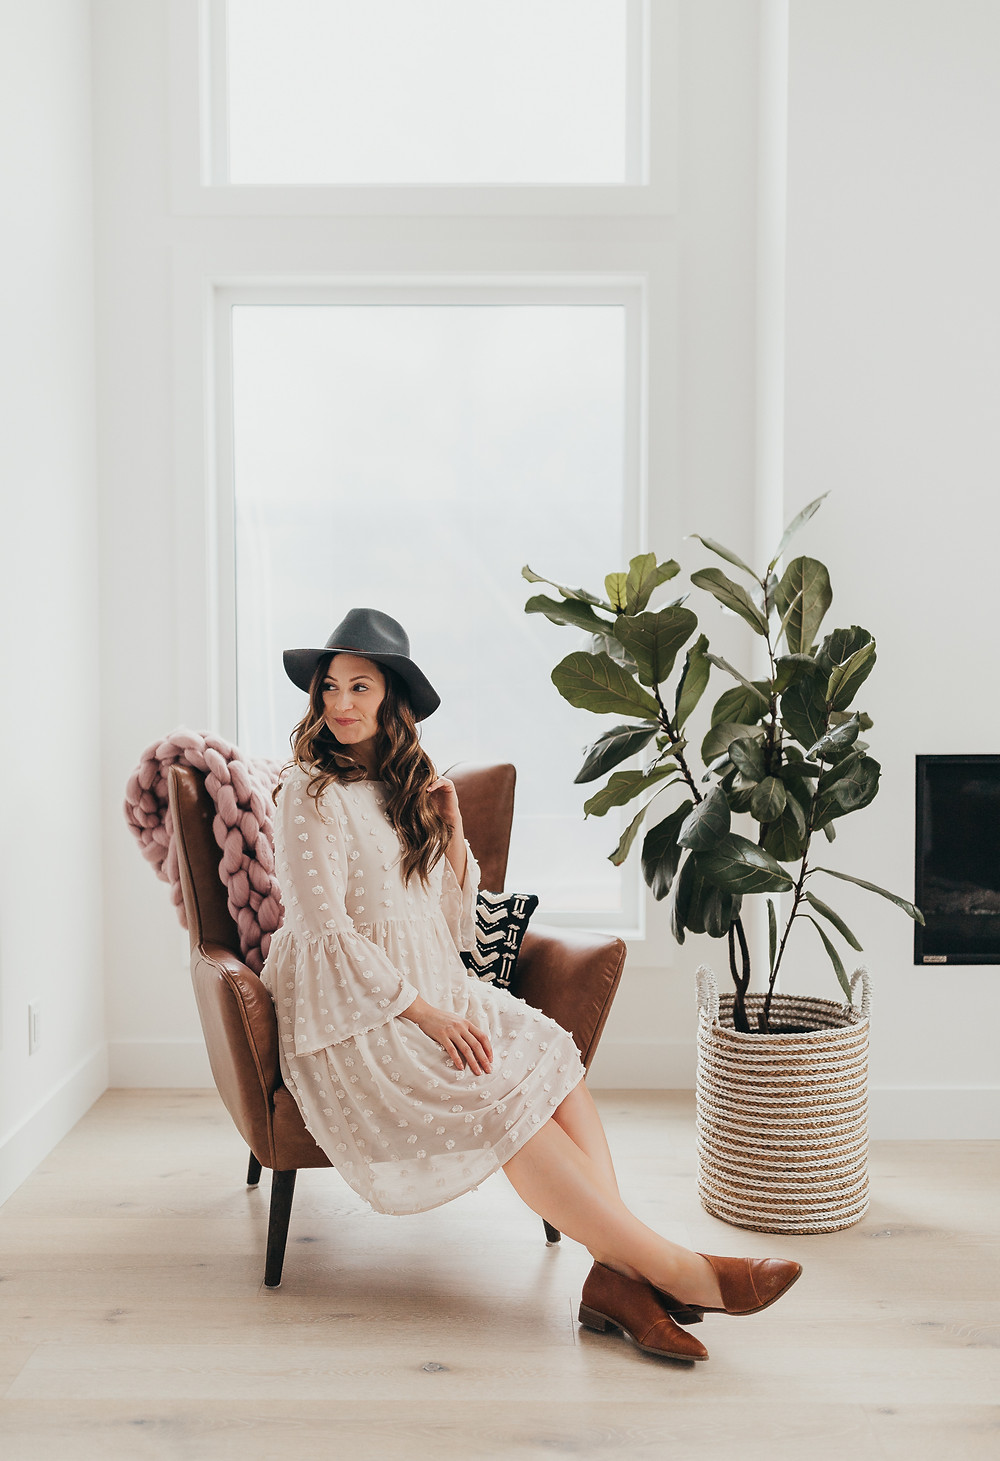 A girl is sitting on a brown leather chair wearing a boho inspired dress